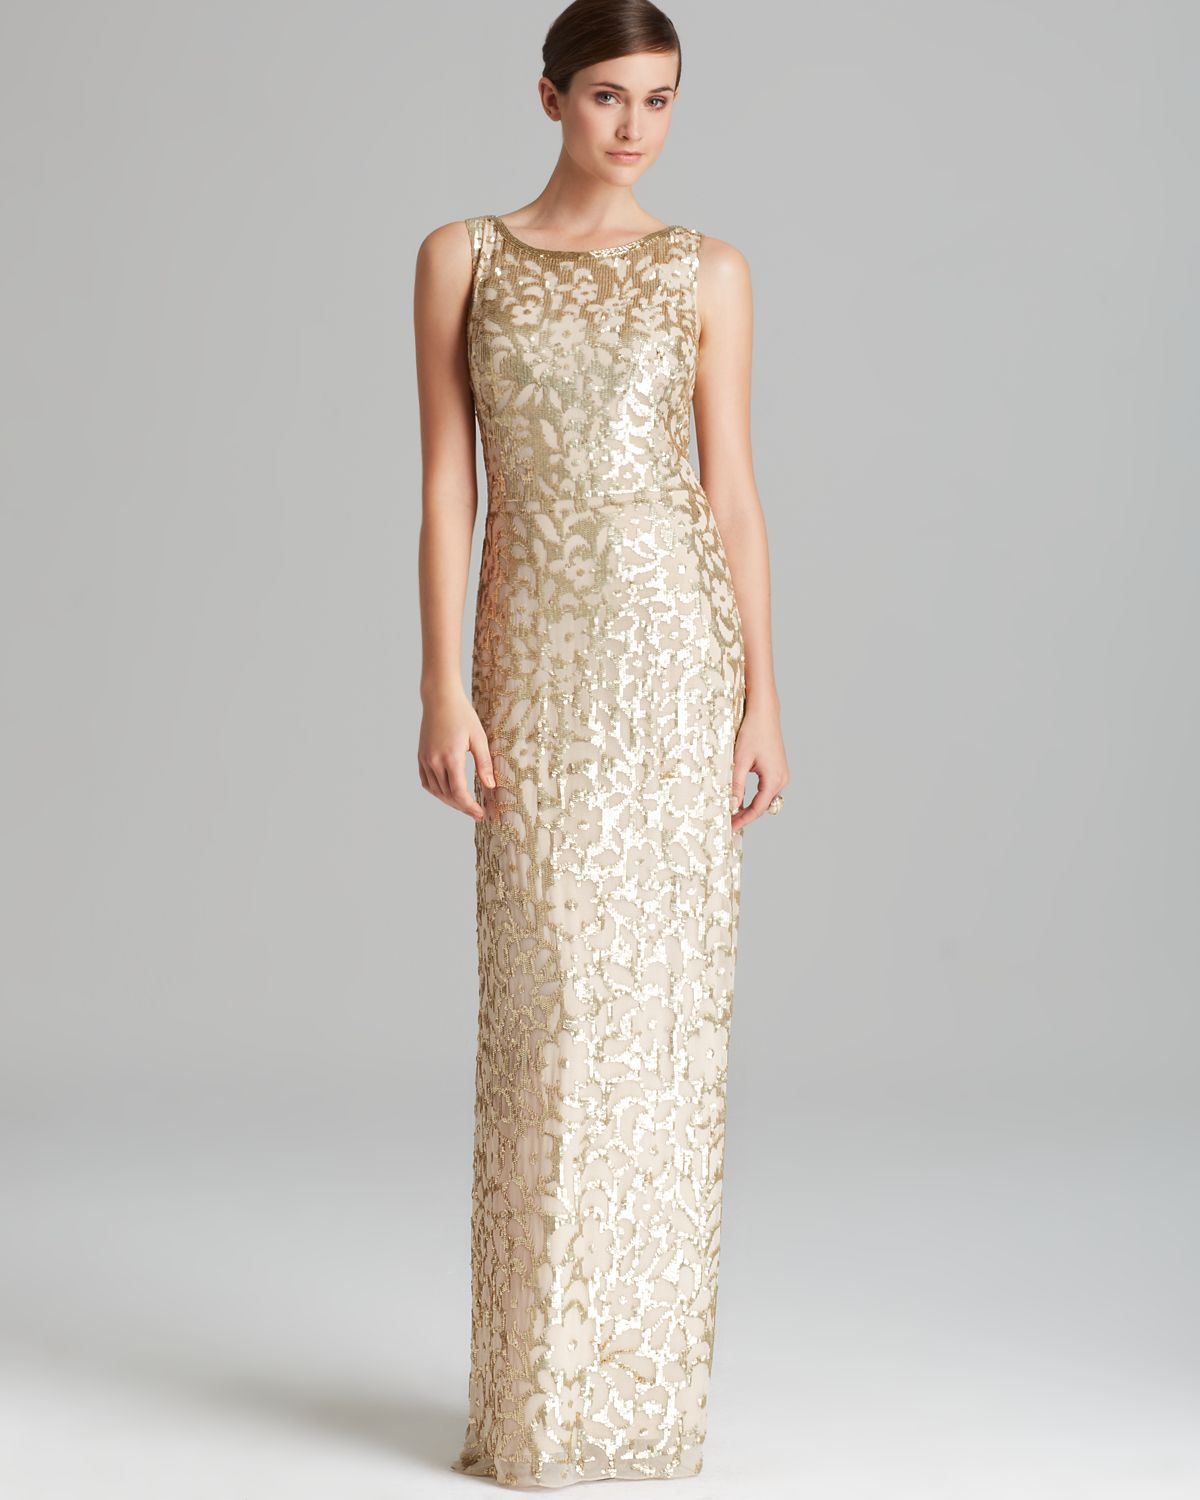 Aidan mattox Column Gown Sleeveless Sequin Patterned in Metallic ...